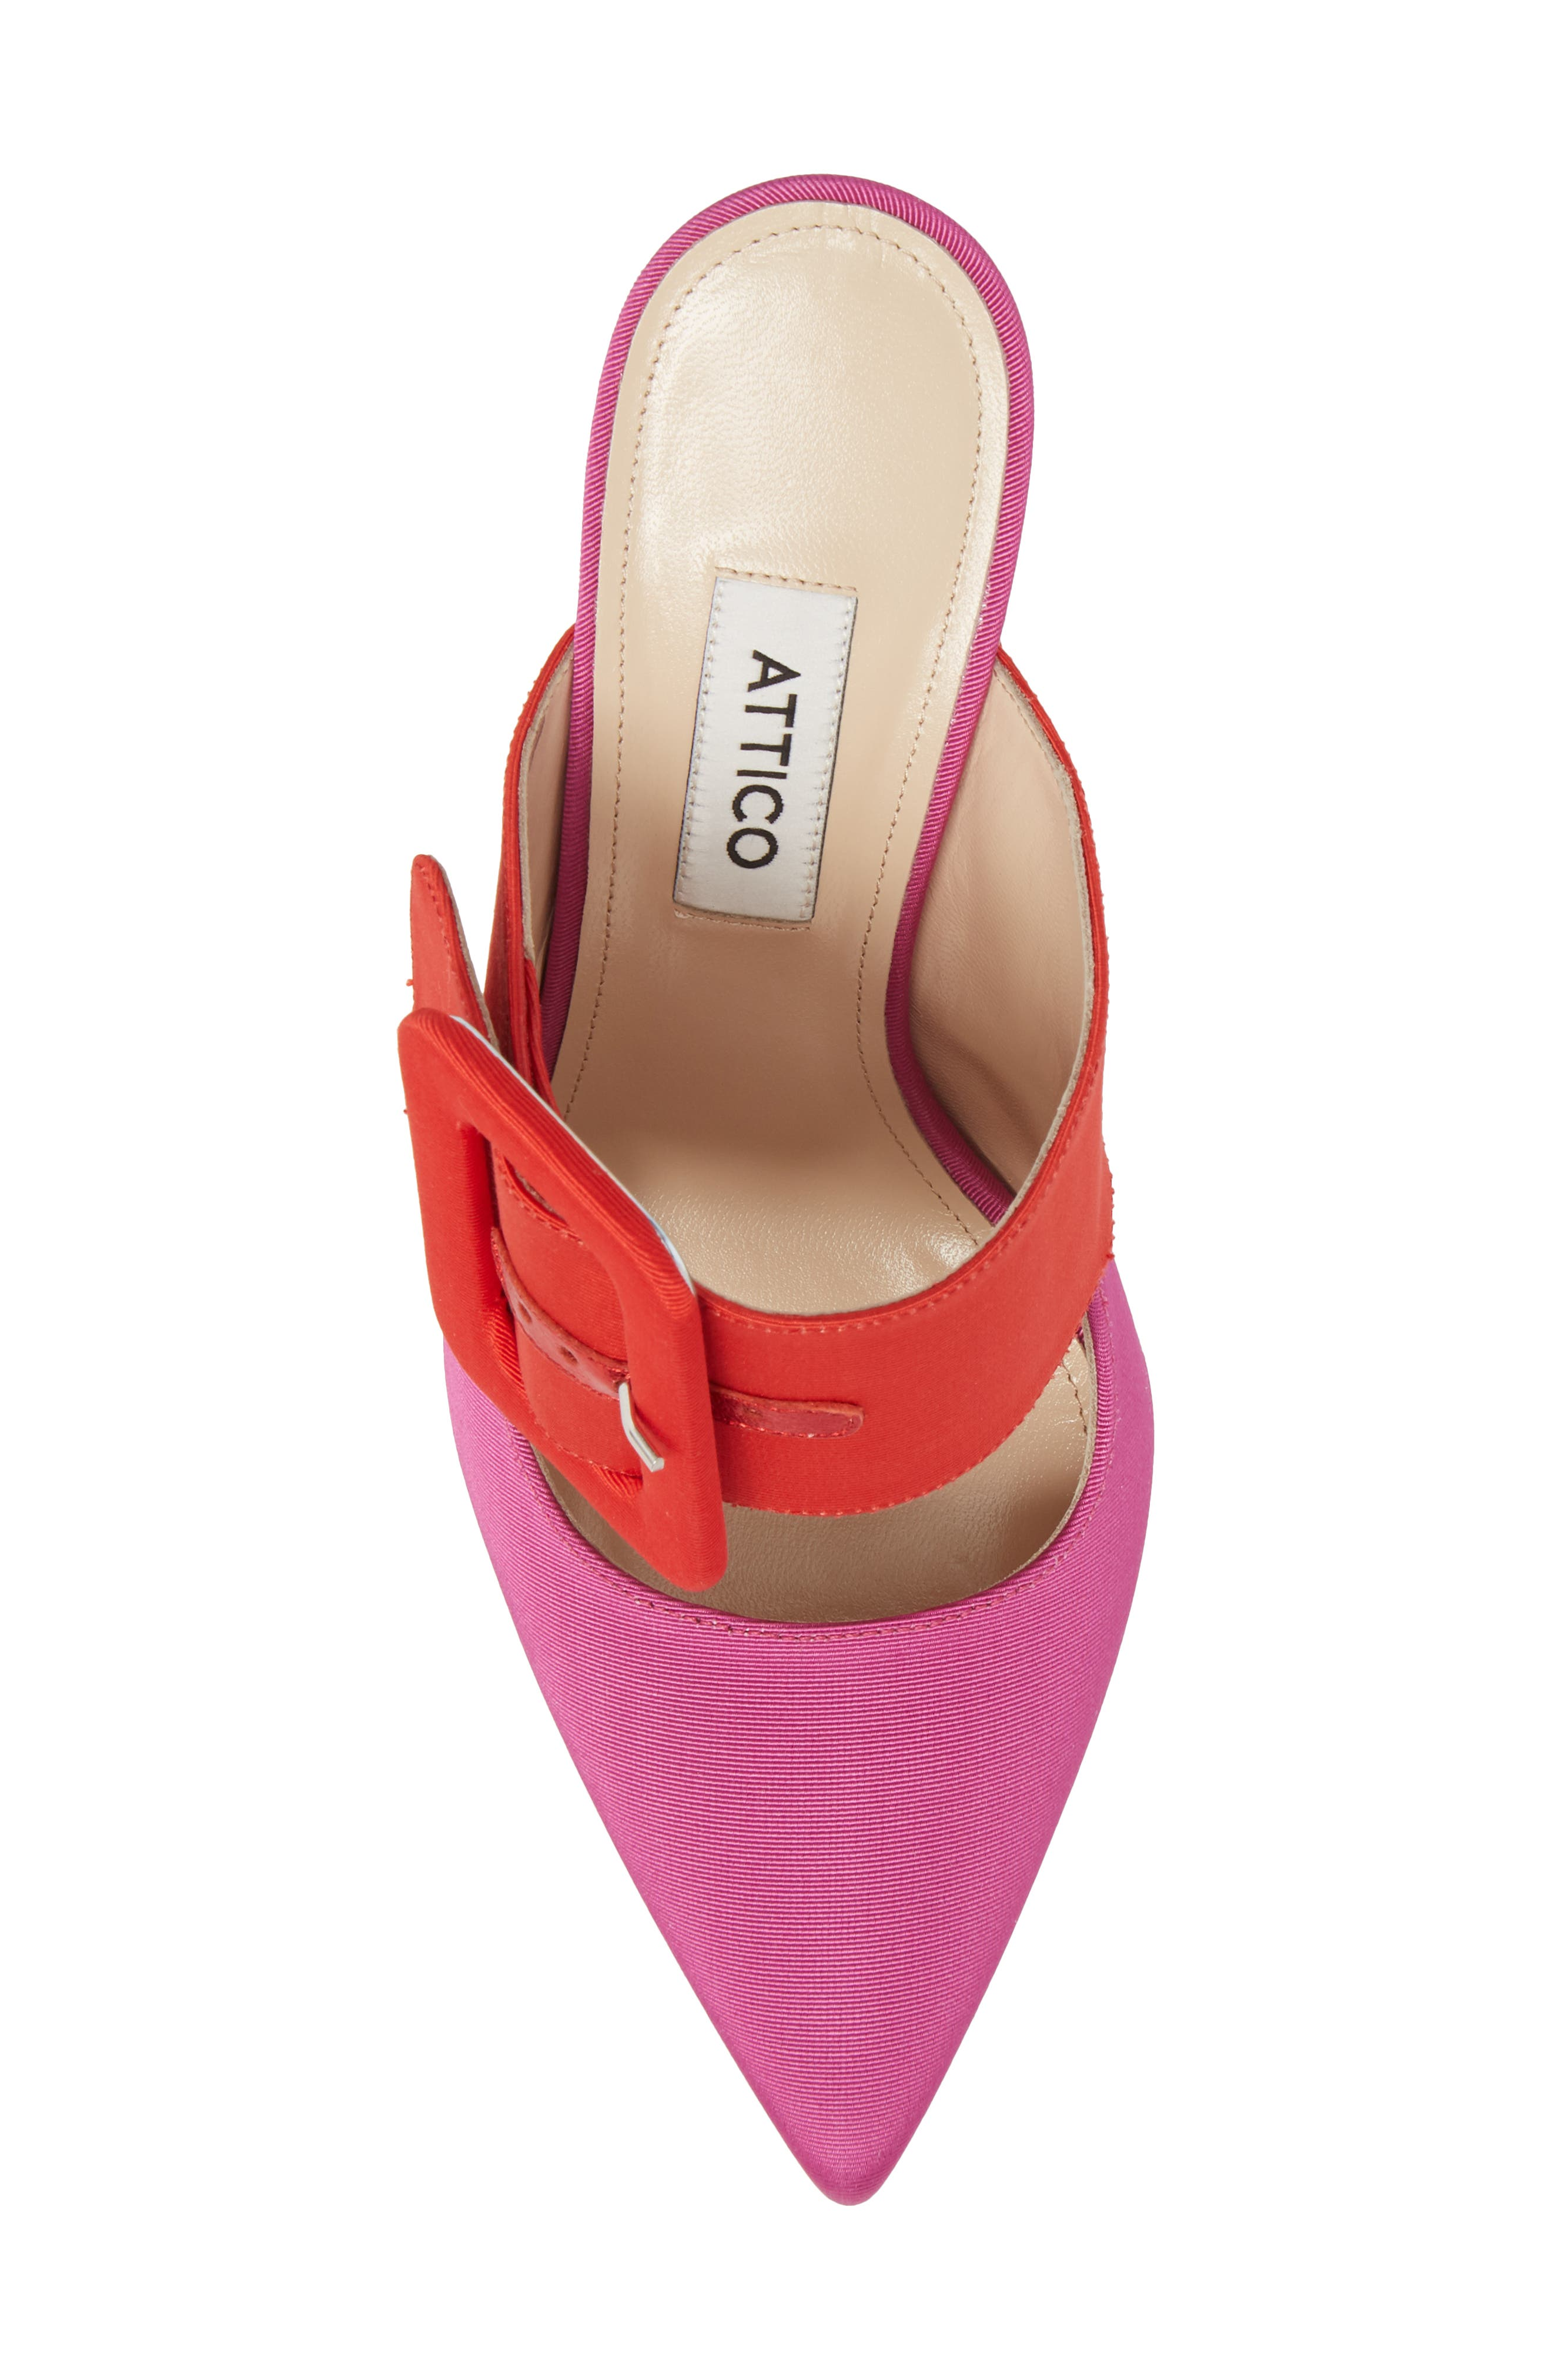 Chloé Buckle Mule,                             Alternate thumbnail 5, color,                             Pink/ Red